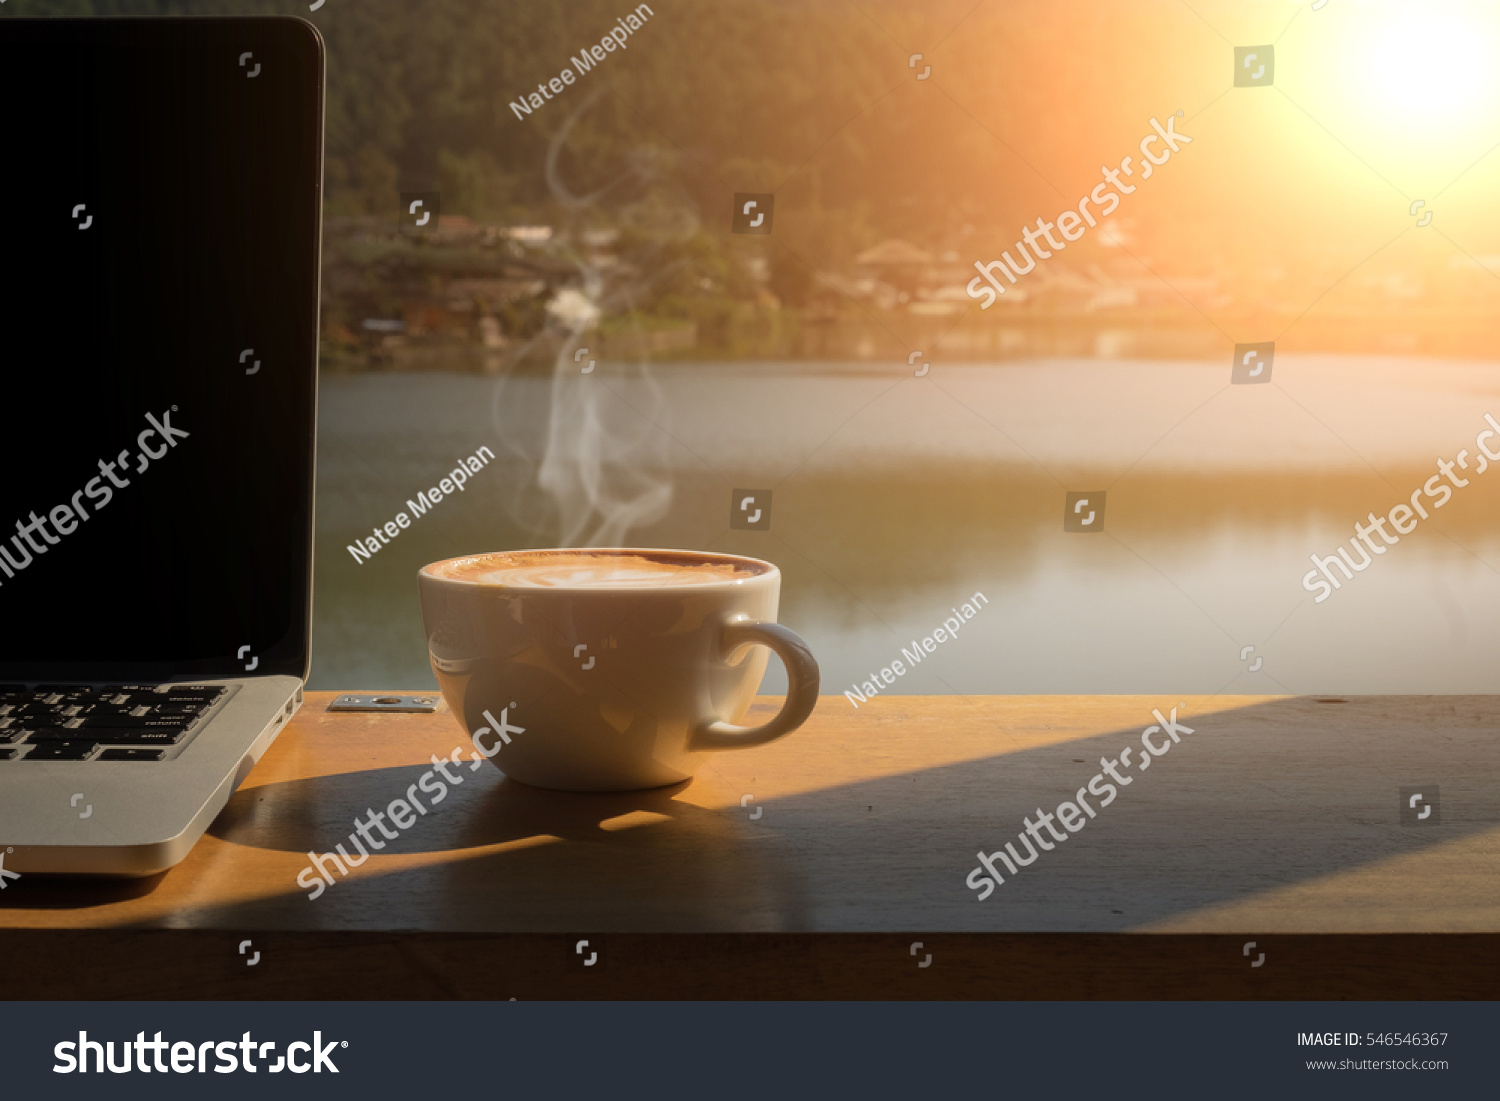 Coffee morning and laptop on wooden table with lake, mountain and village background. #546546367